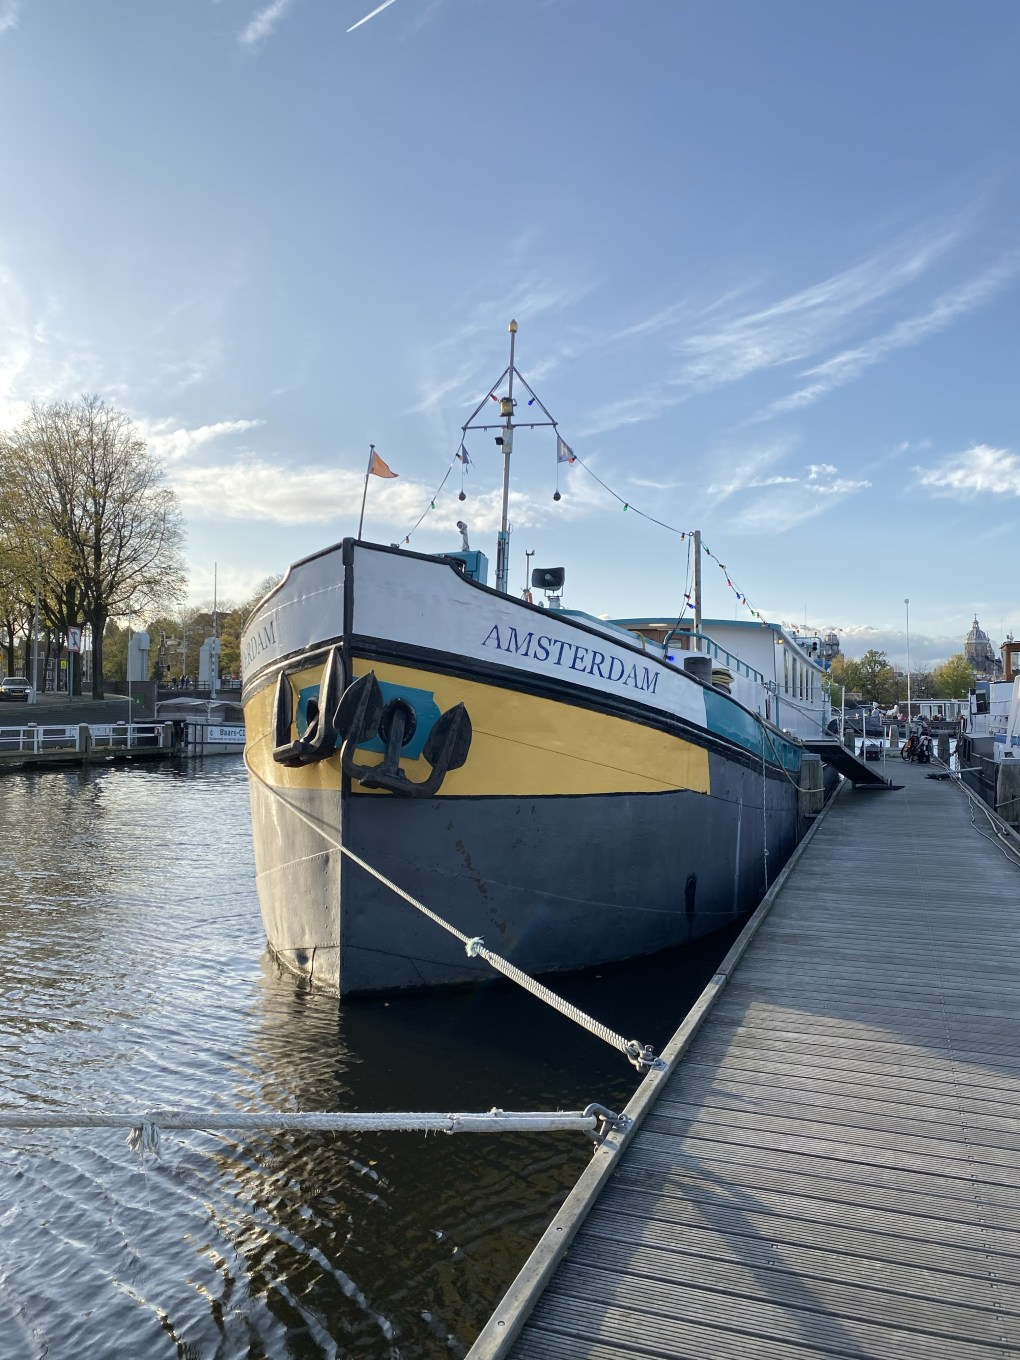 unique hotels: Amsterdam Hotelboat